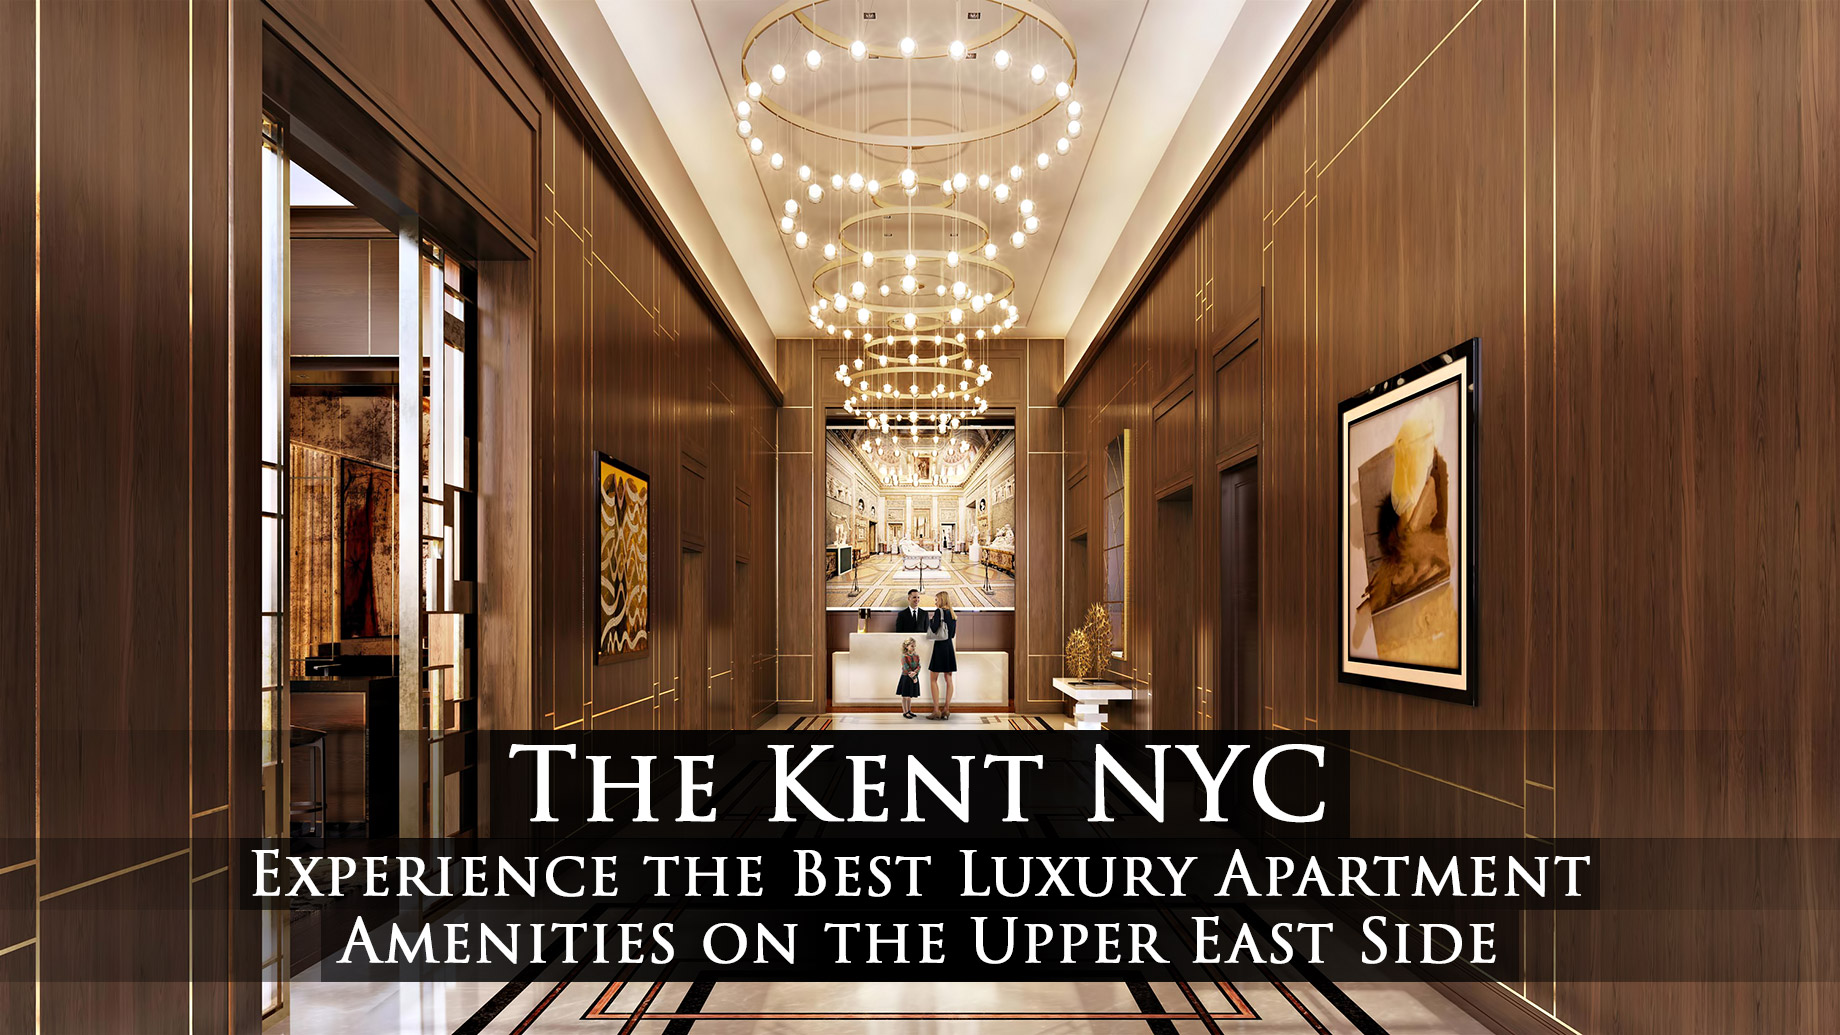 The Kent NYC - Experience the Best Luxury Apartment Amenities on the Upper East Side